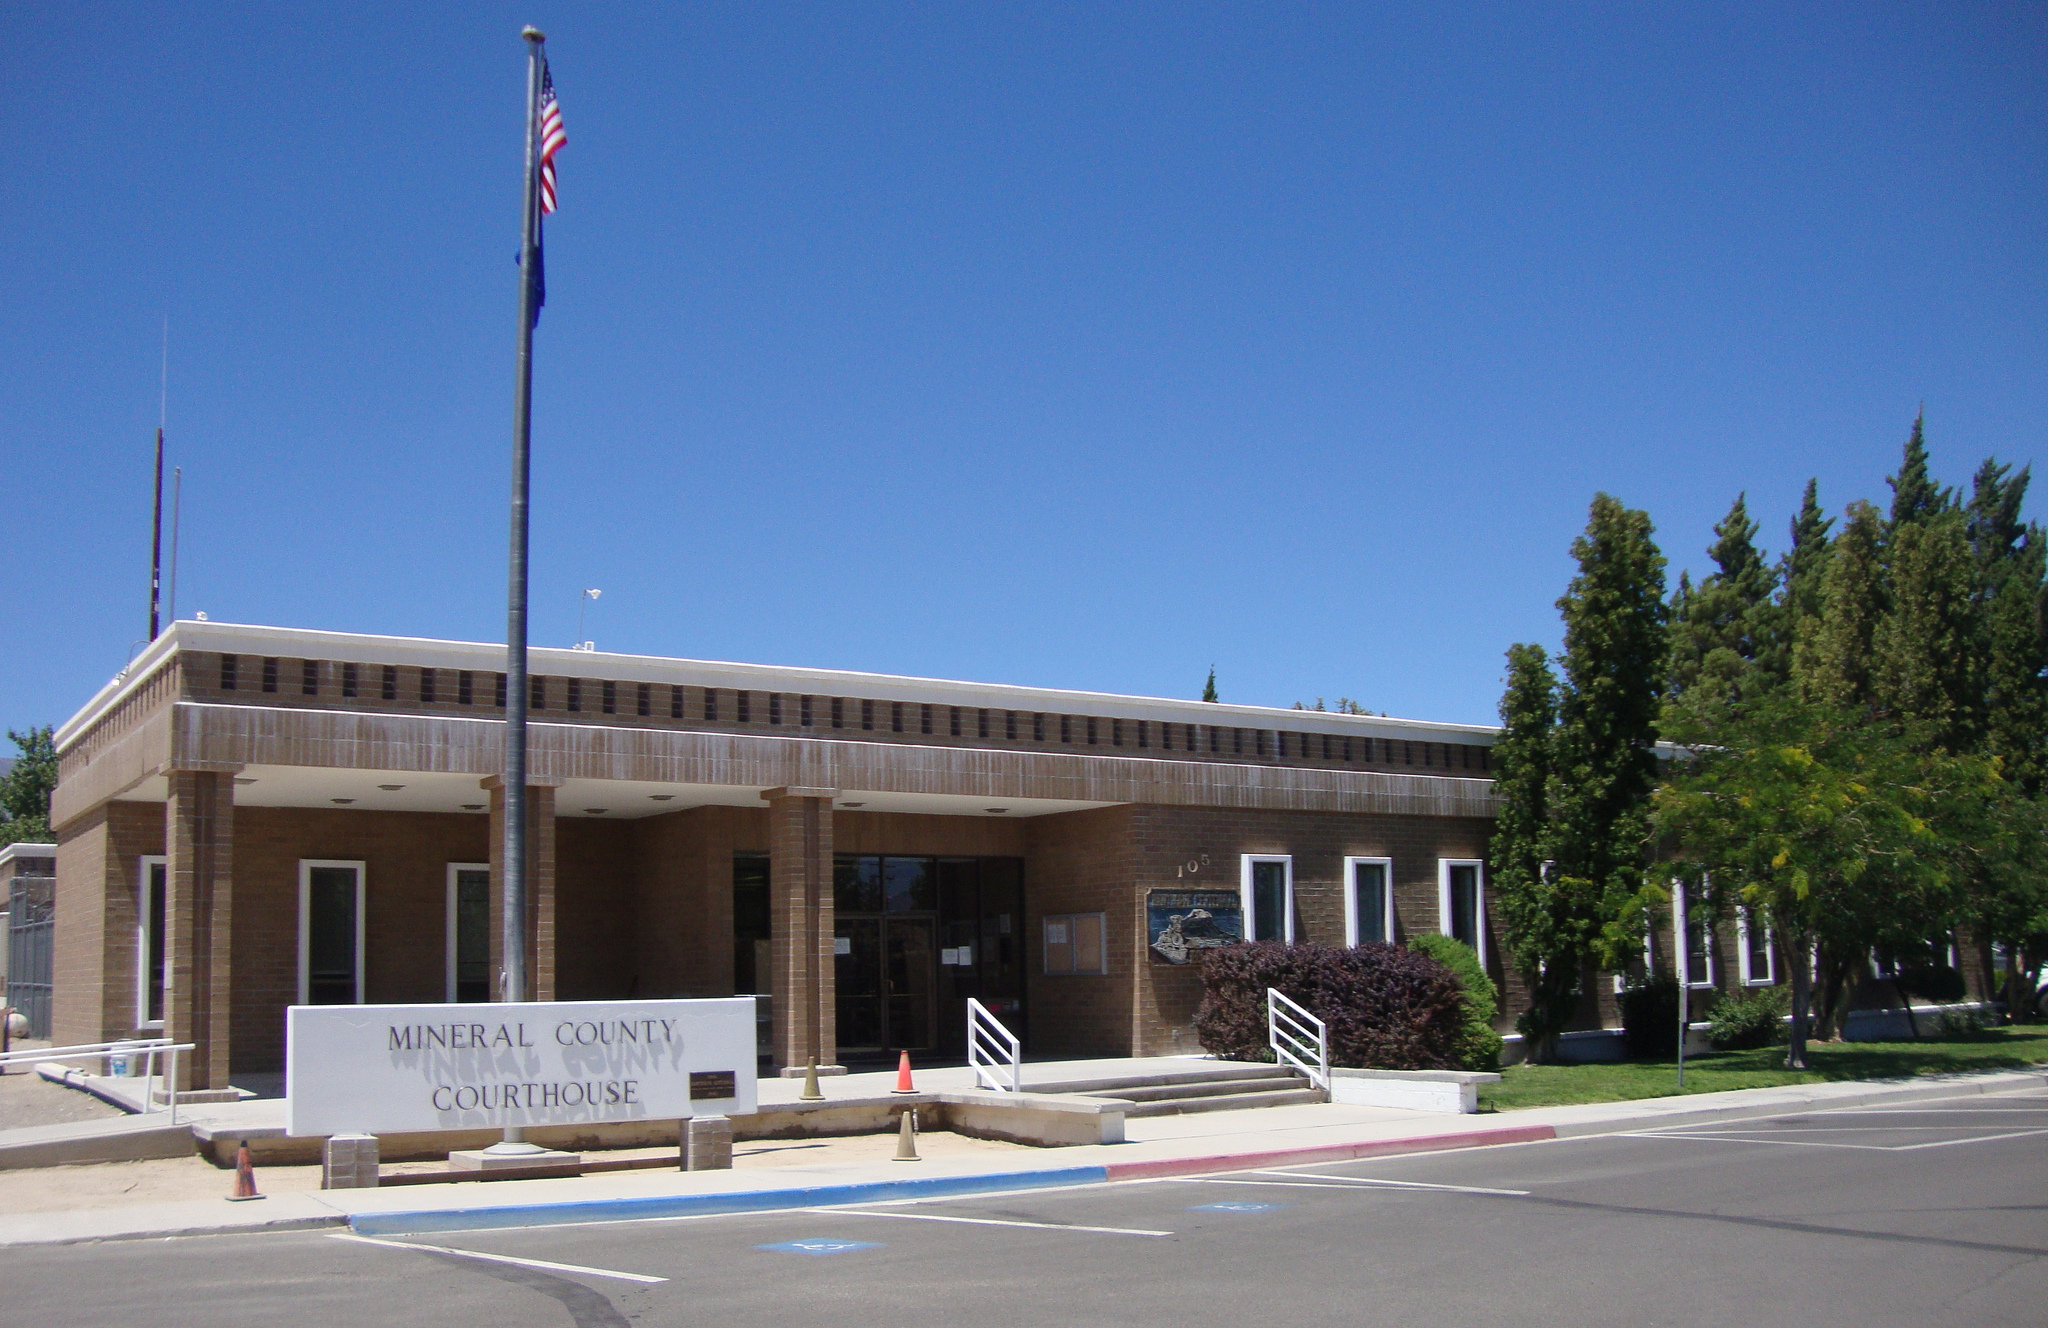 Eleventh Judicial District Court of Northern Nevada, serving